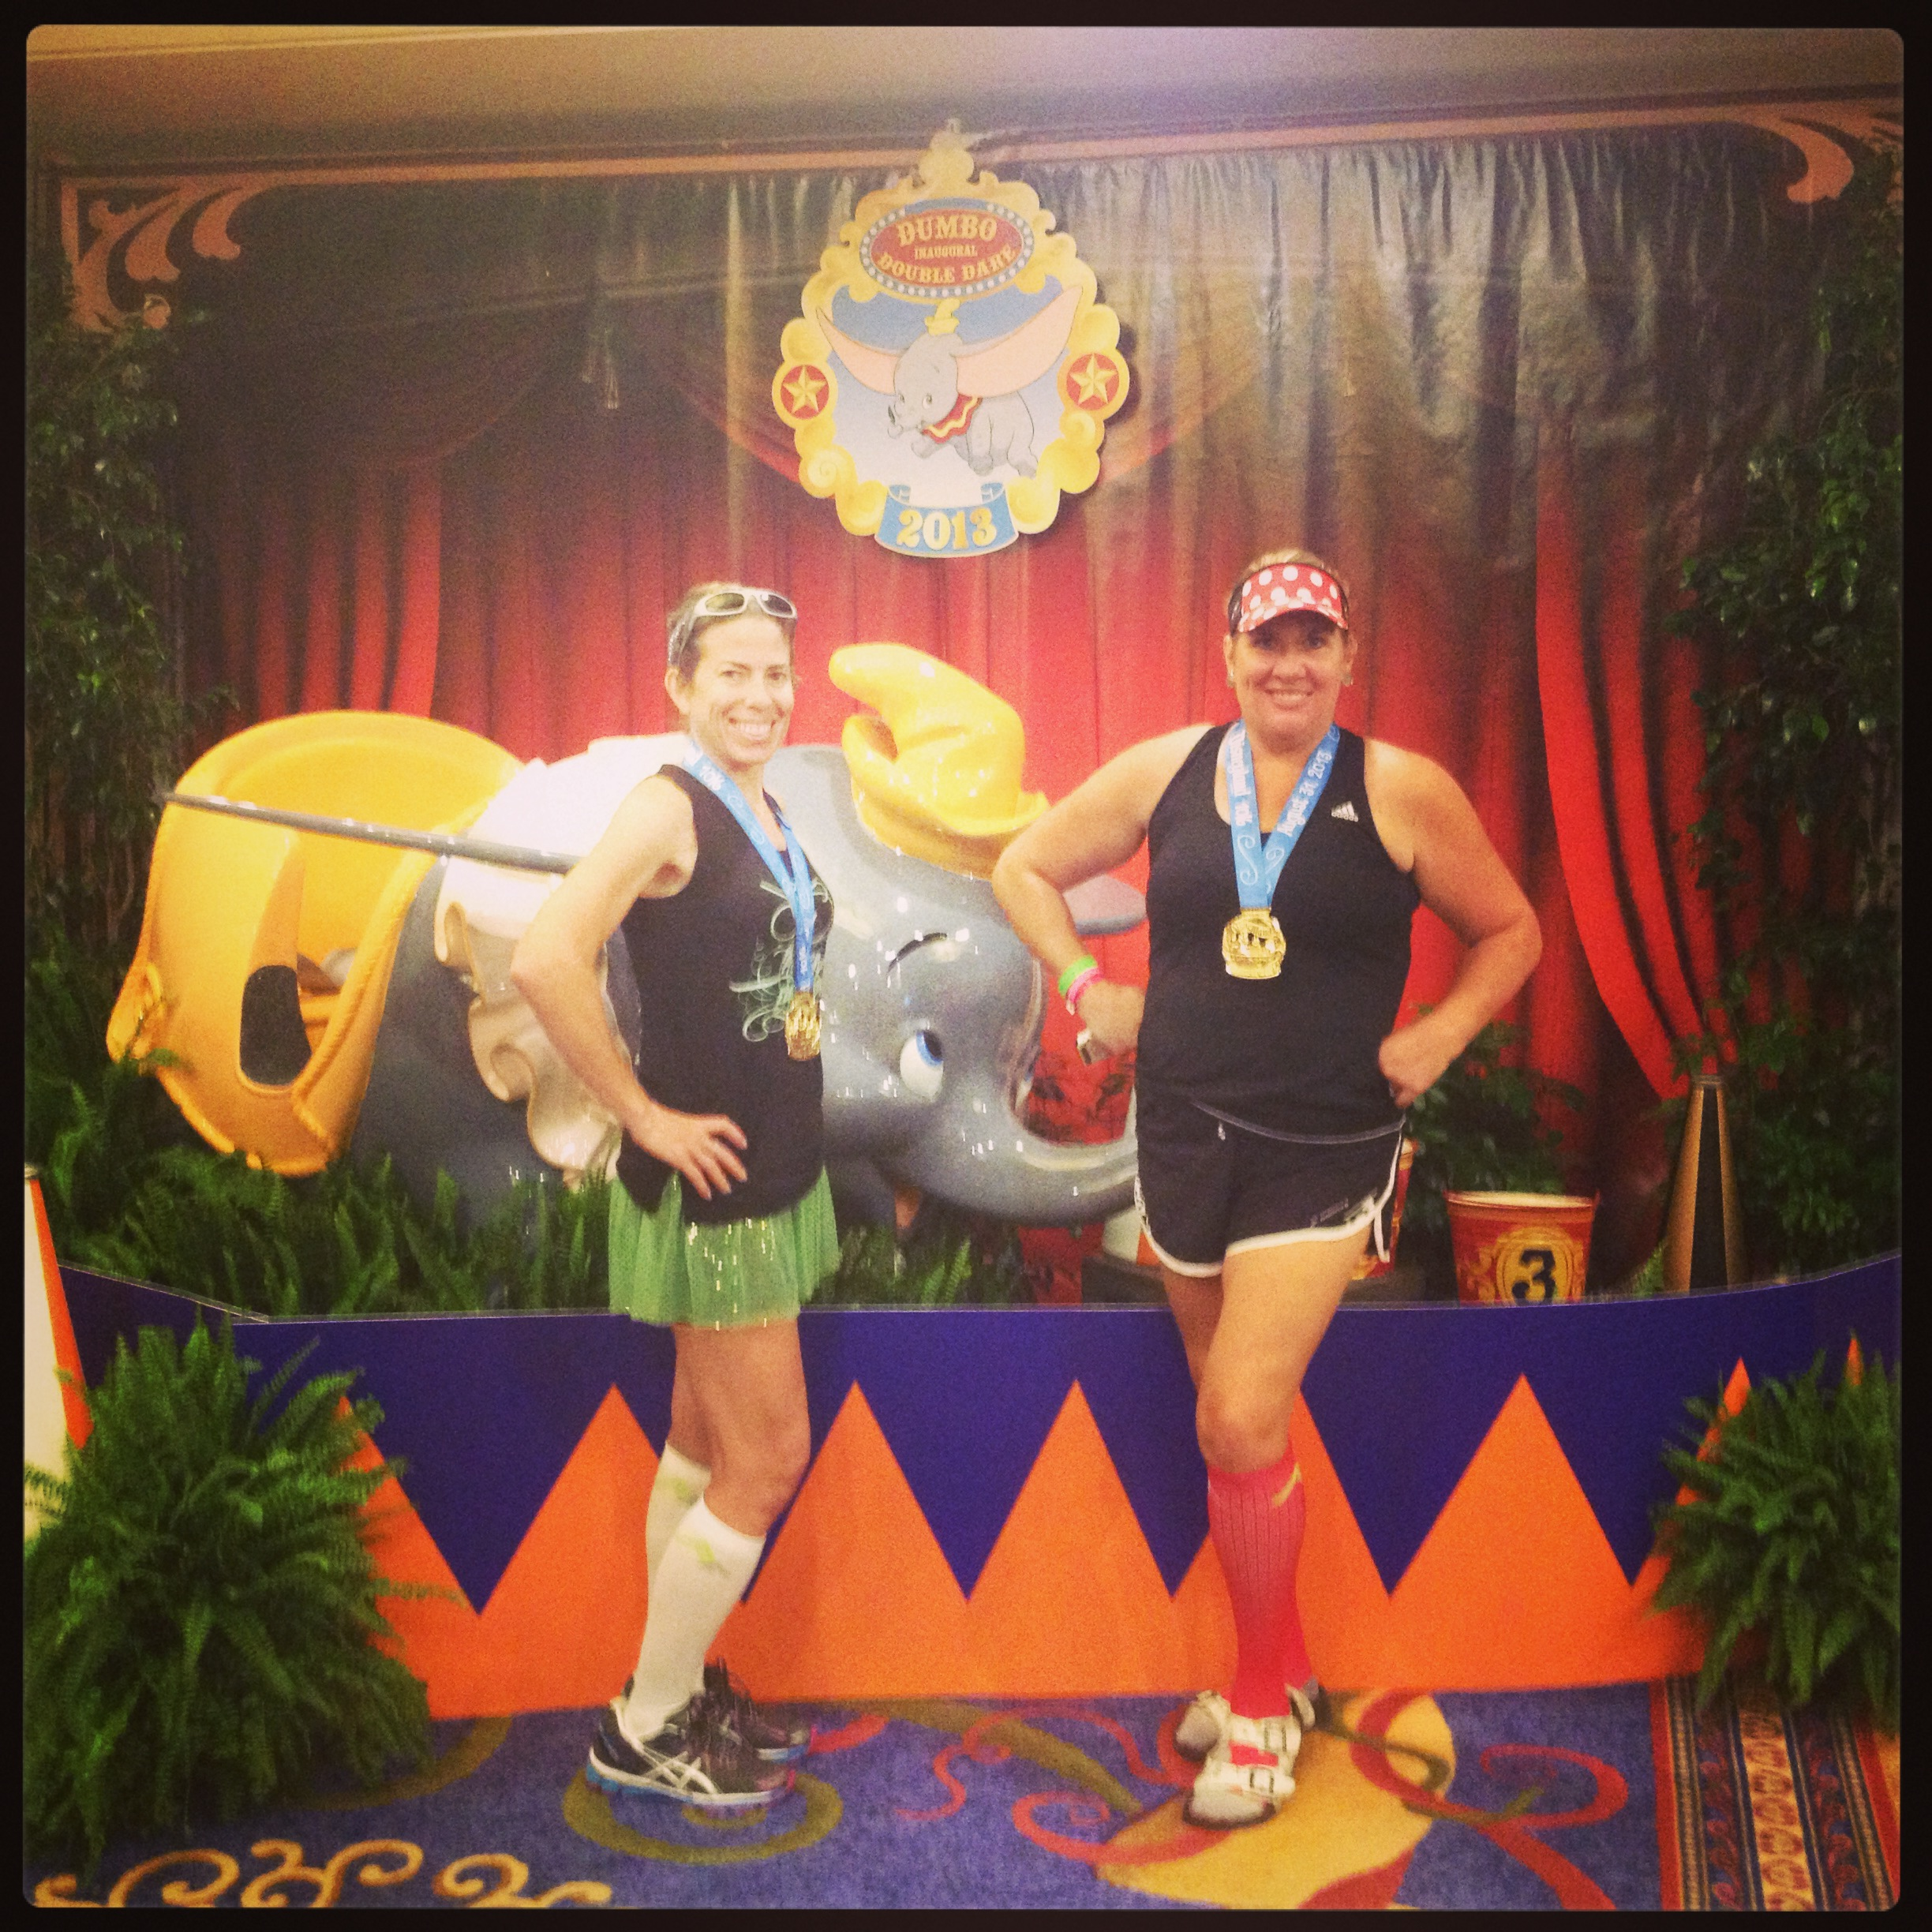 10K complete - ready for the Dumbo Challenge tomorrow am!!